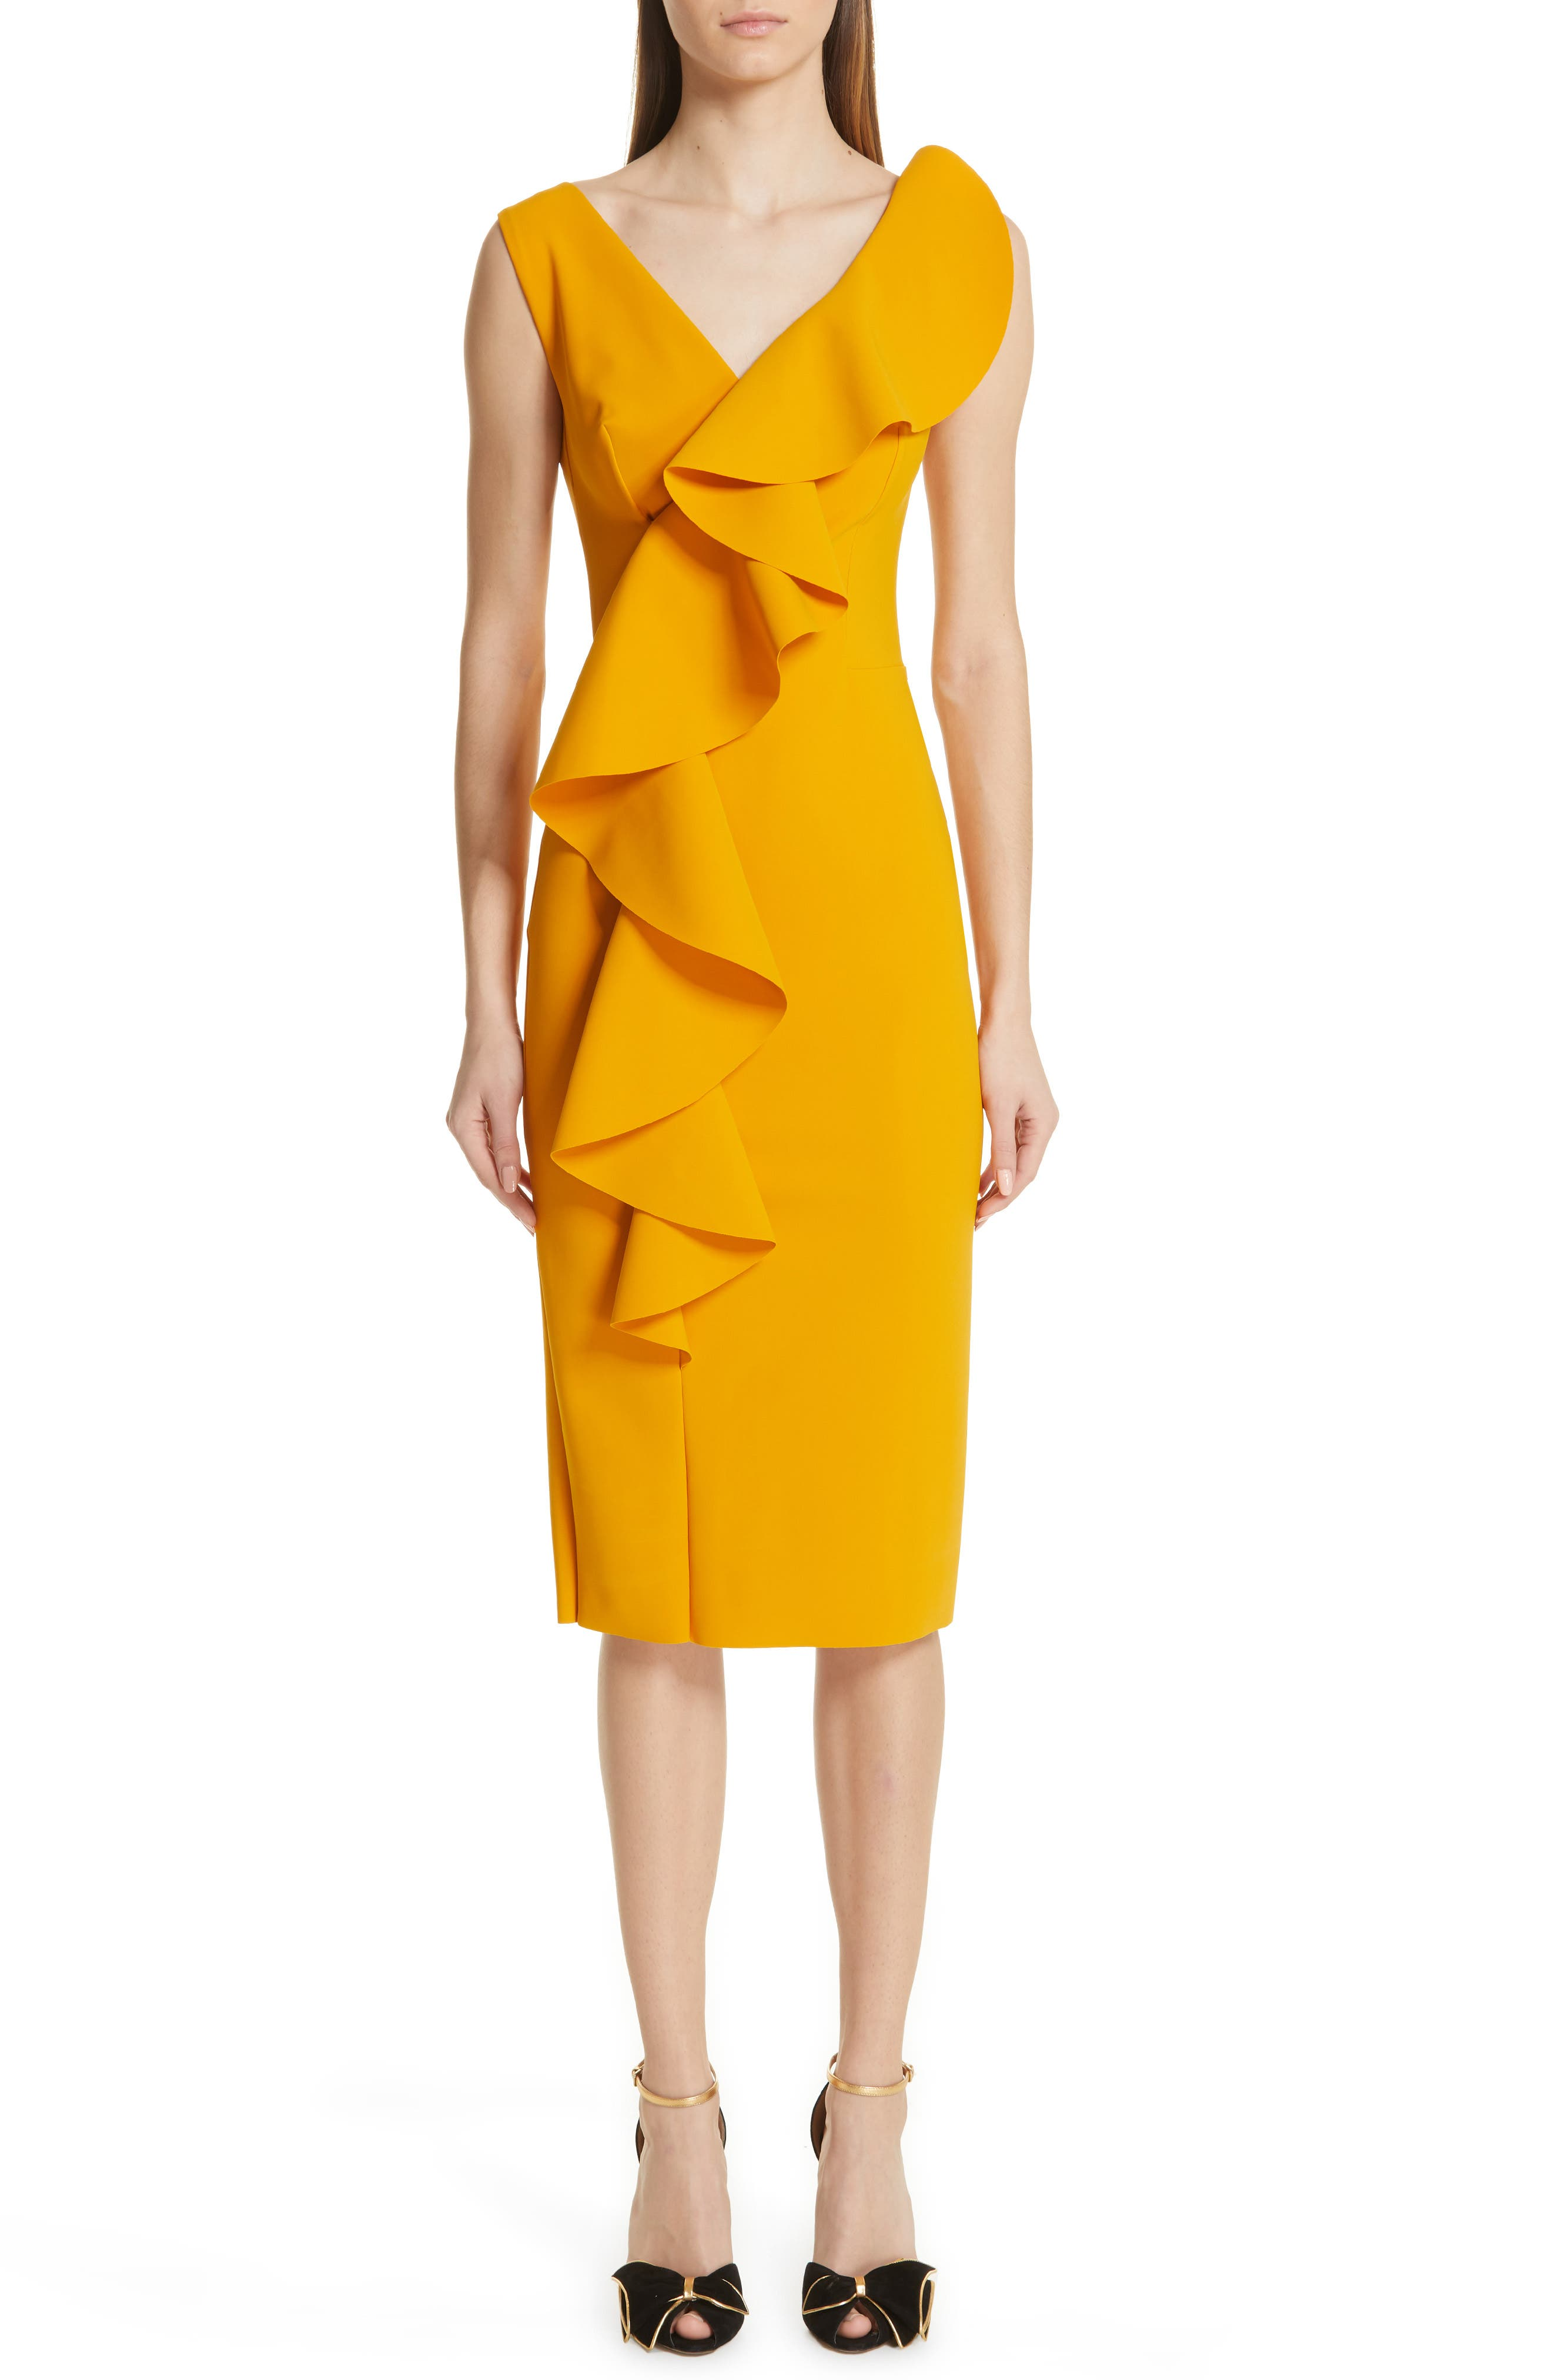 Chiara Boni La Petite Robe Janka Ruffle Midi Cocktail Dress, 8 IT - Yellow